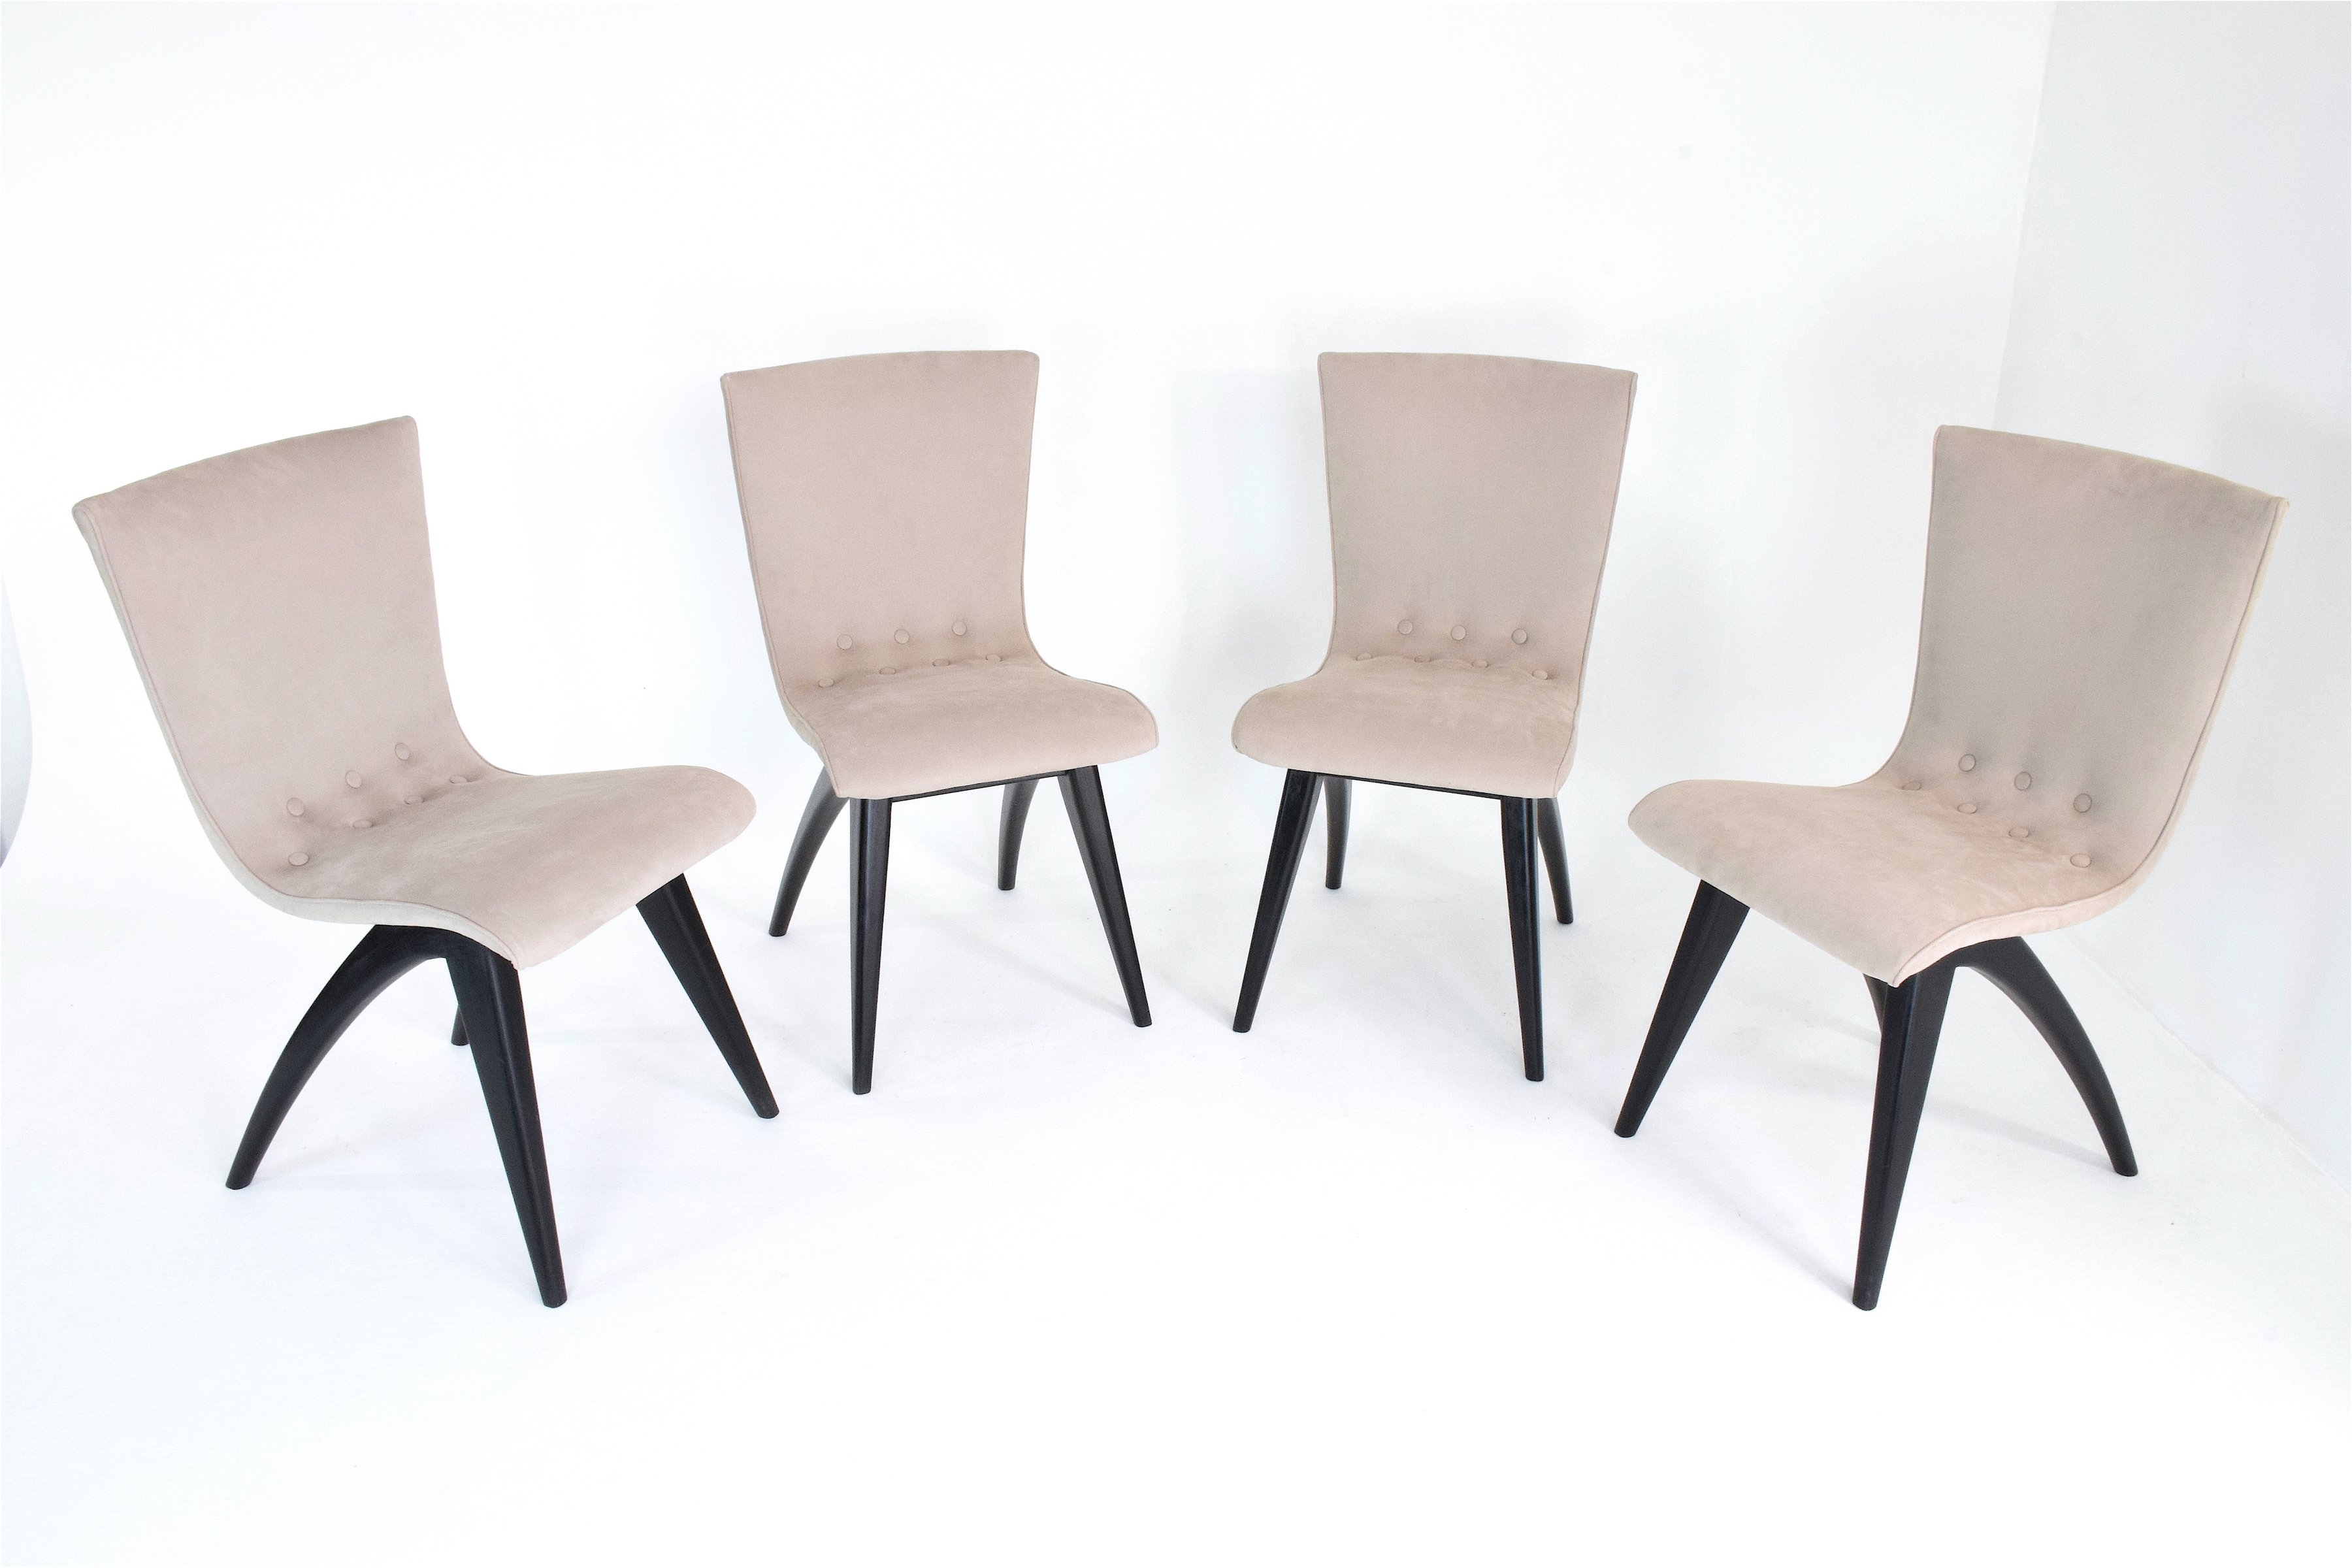 Marrakech Swing Chair Set Of 4 Swing Dining Chairs By Cj Van Os 1950s 73488